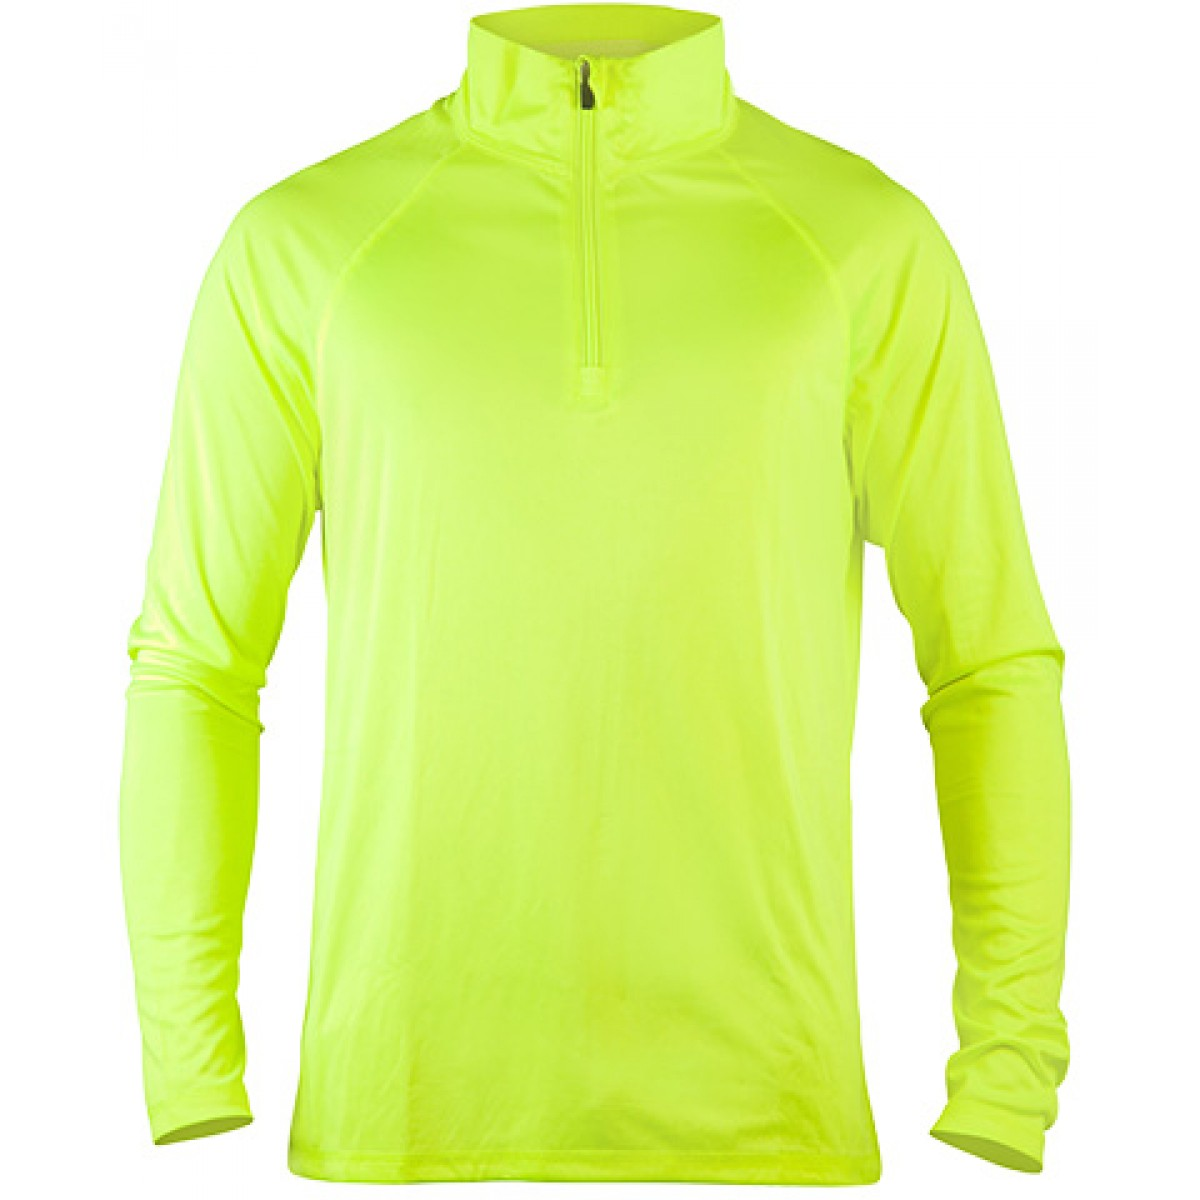 Men's Quarter-Zip Lightweight Pullover-Neon Green-L